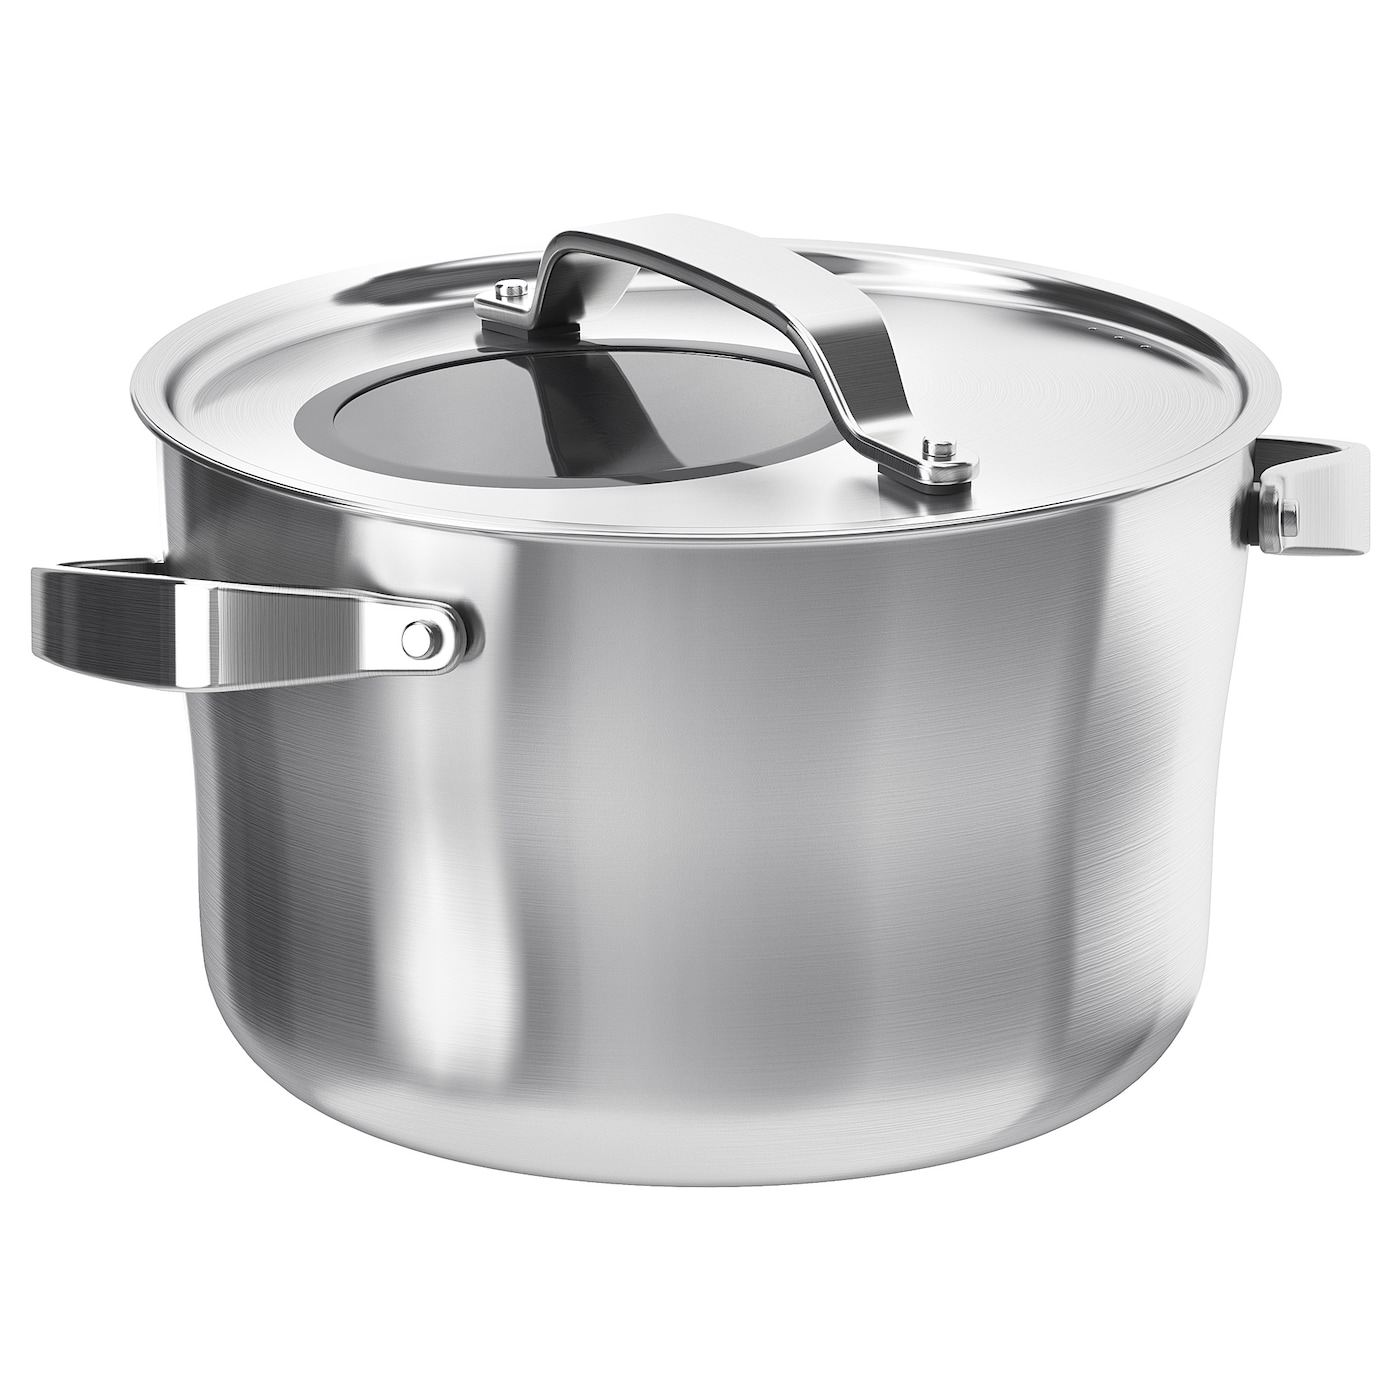 Ikea Sensuell Pot With Lid 25 Year Guarantee Read About The Terms In